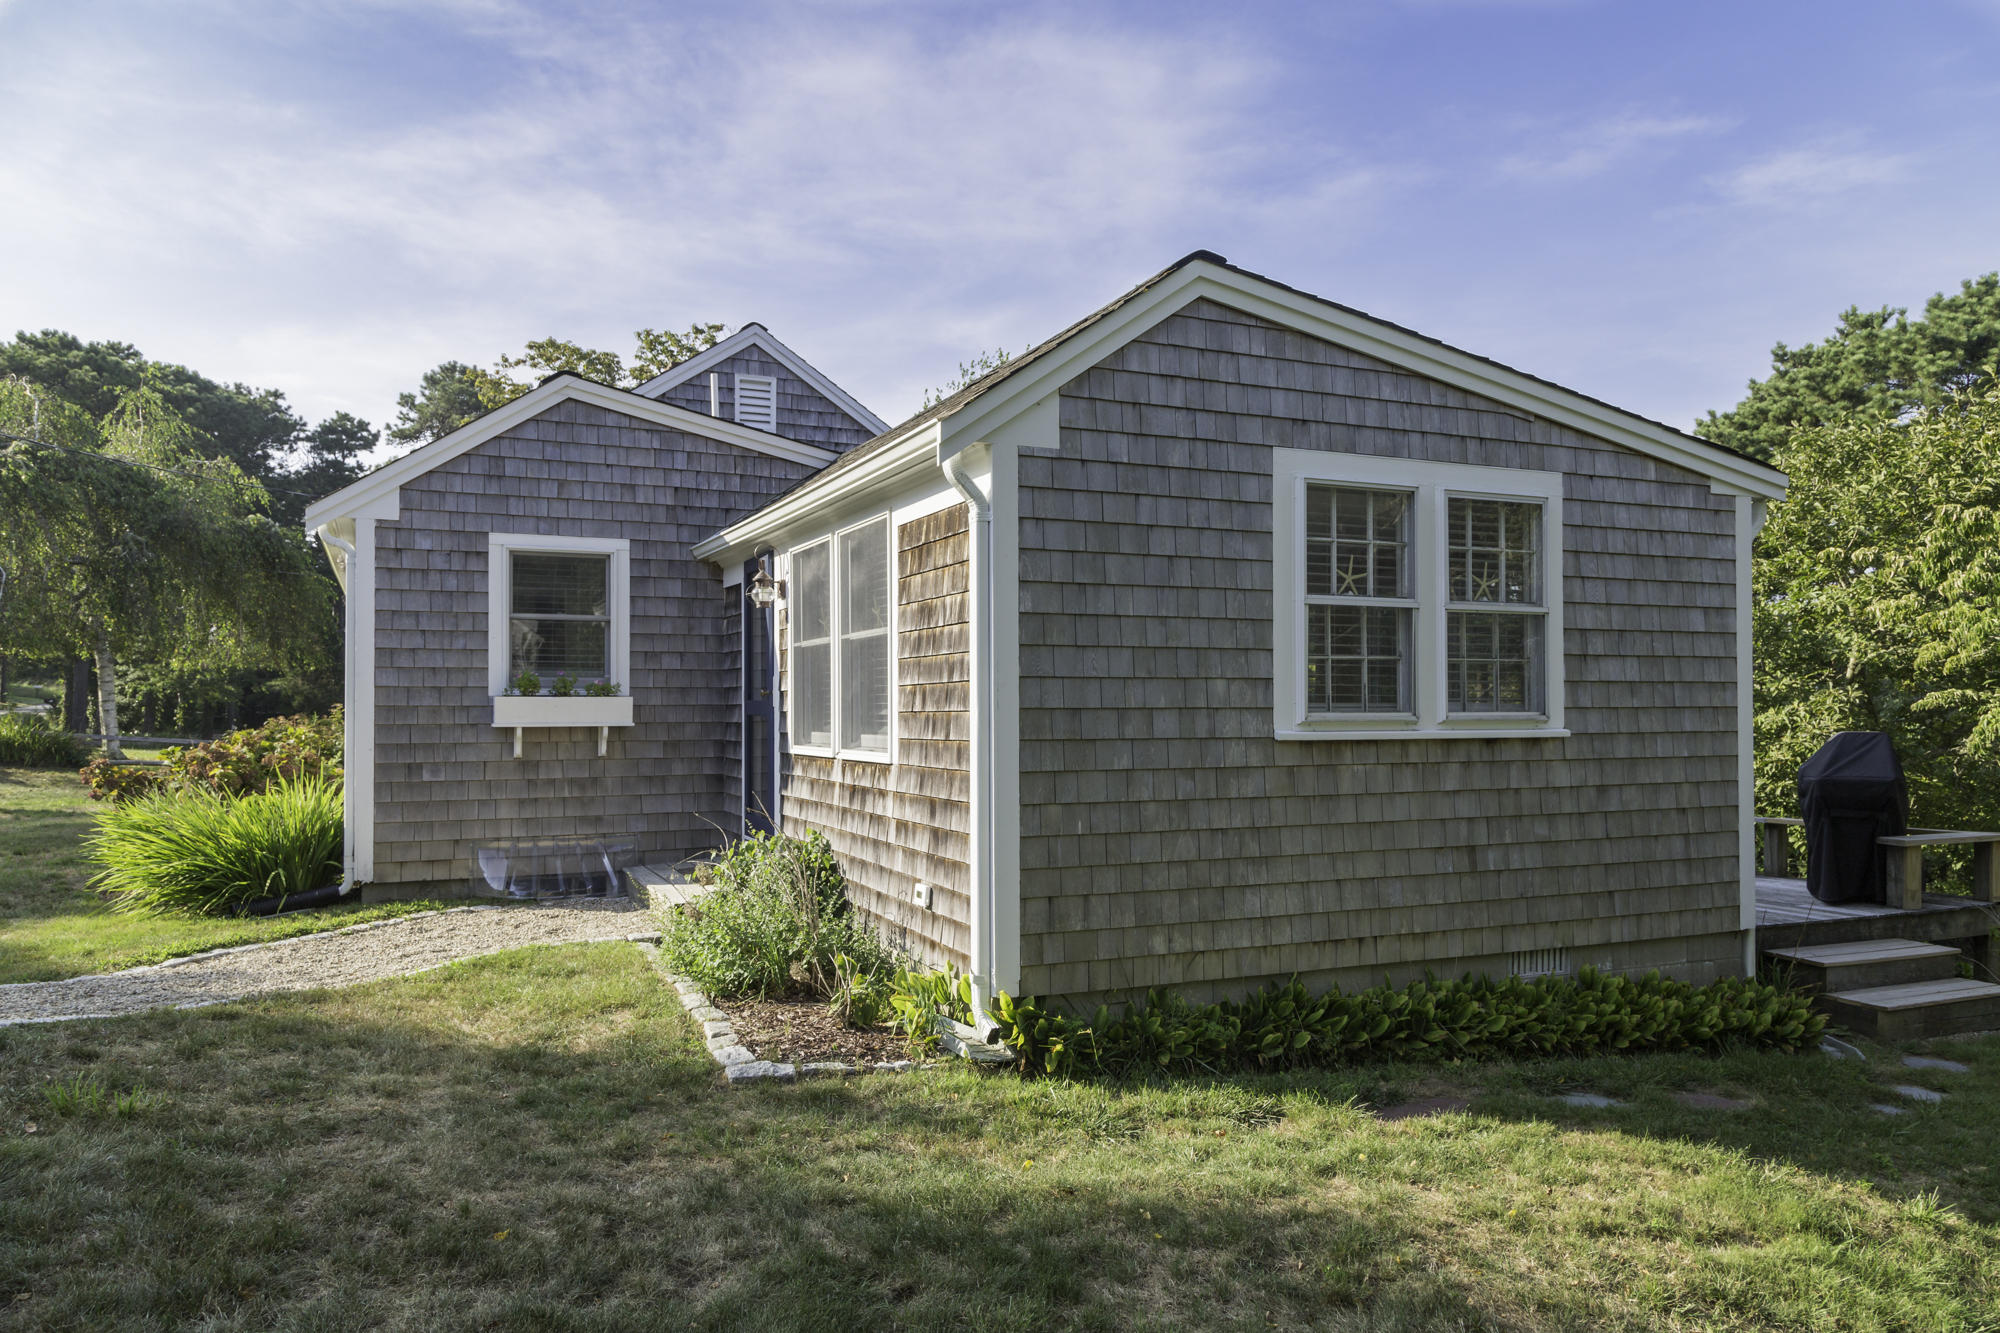 46 Meadow Brook Road, North Chatham MA, 02650 - slide 22